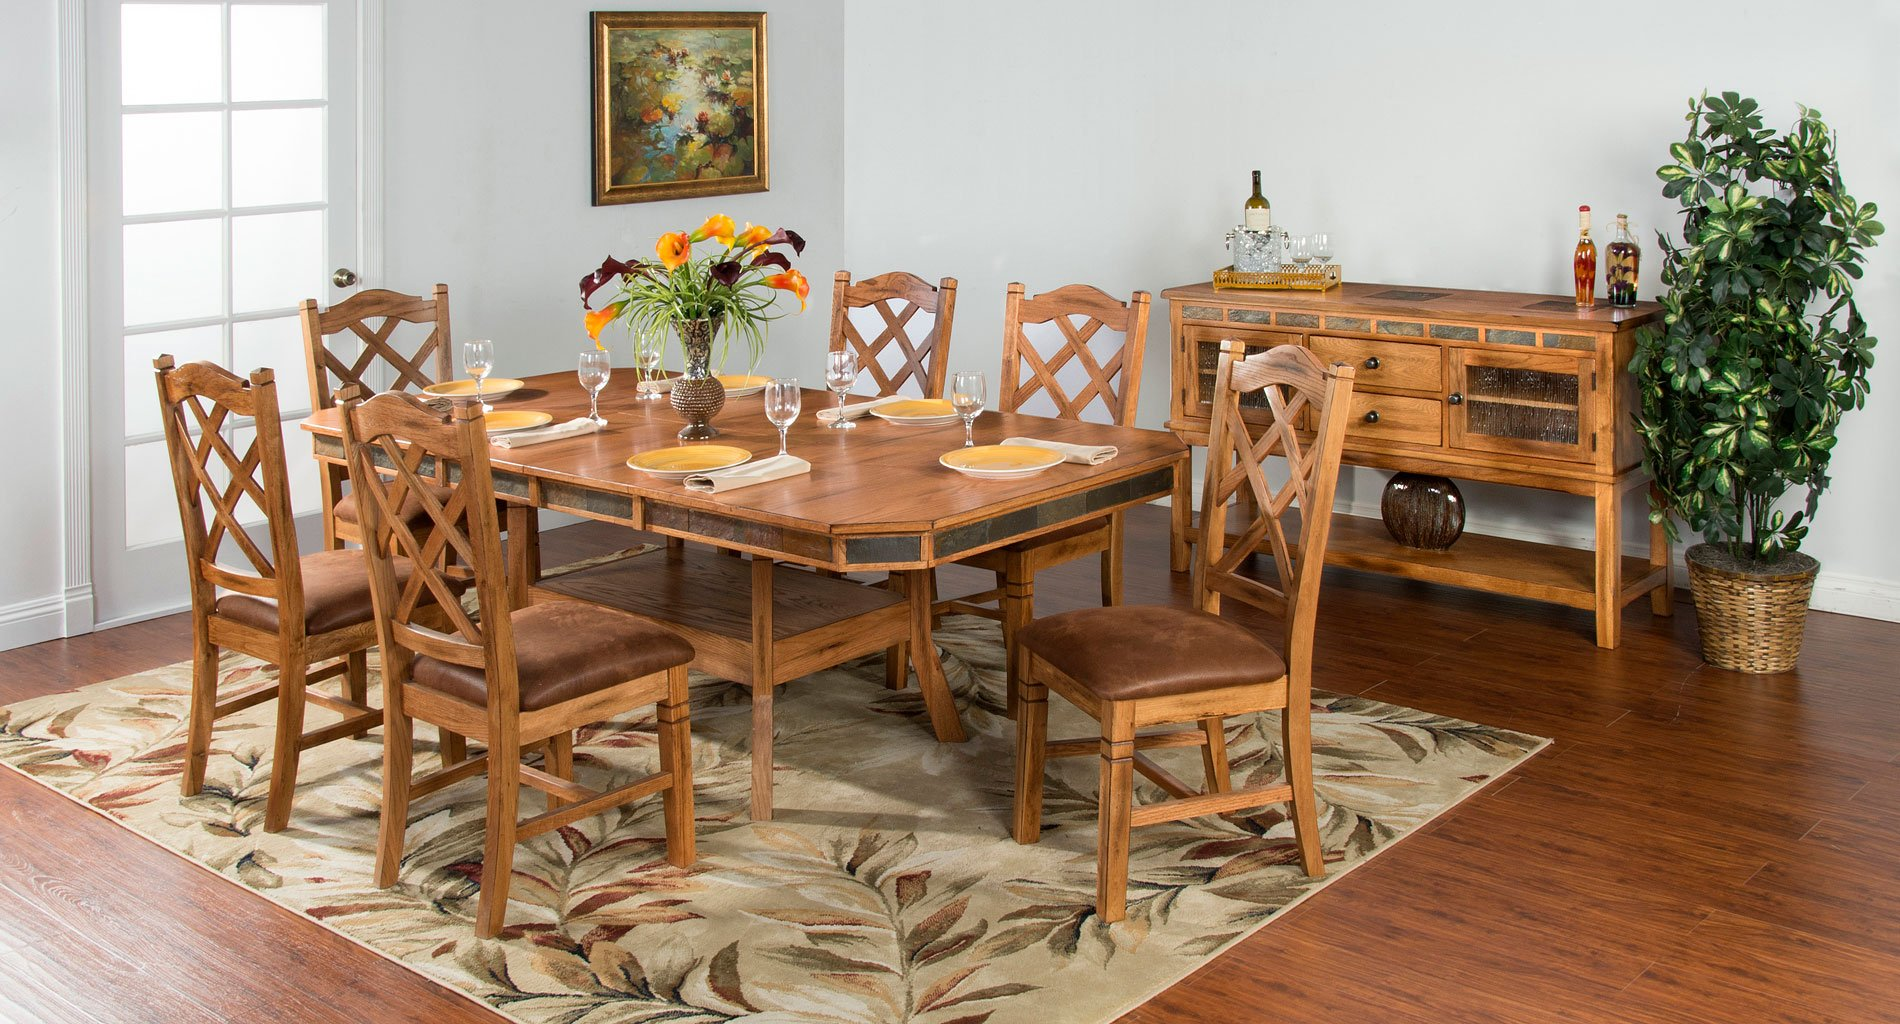 Sedona Adjustable Height Dining Room Set Sunny Designs